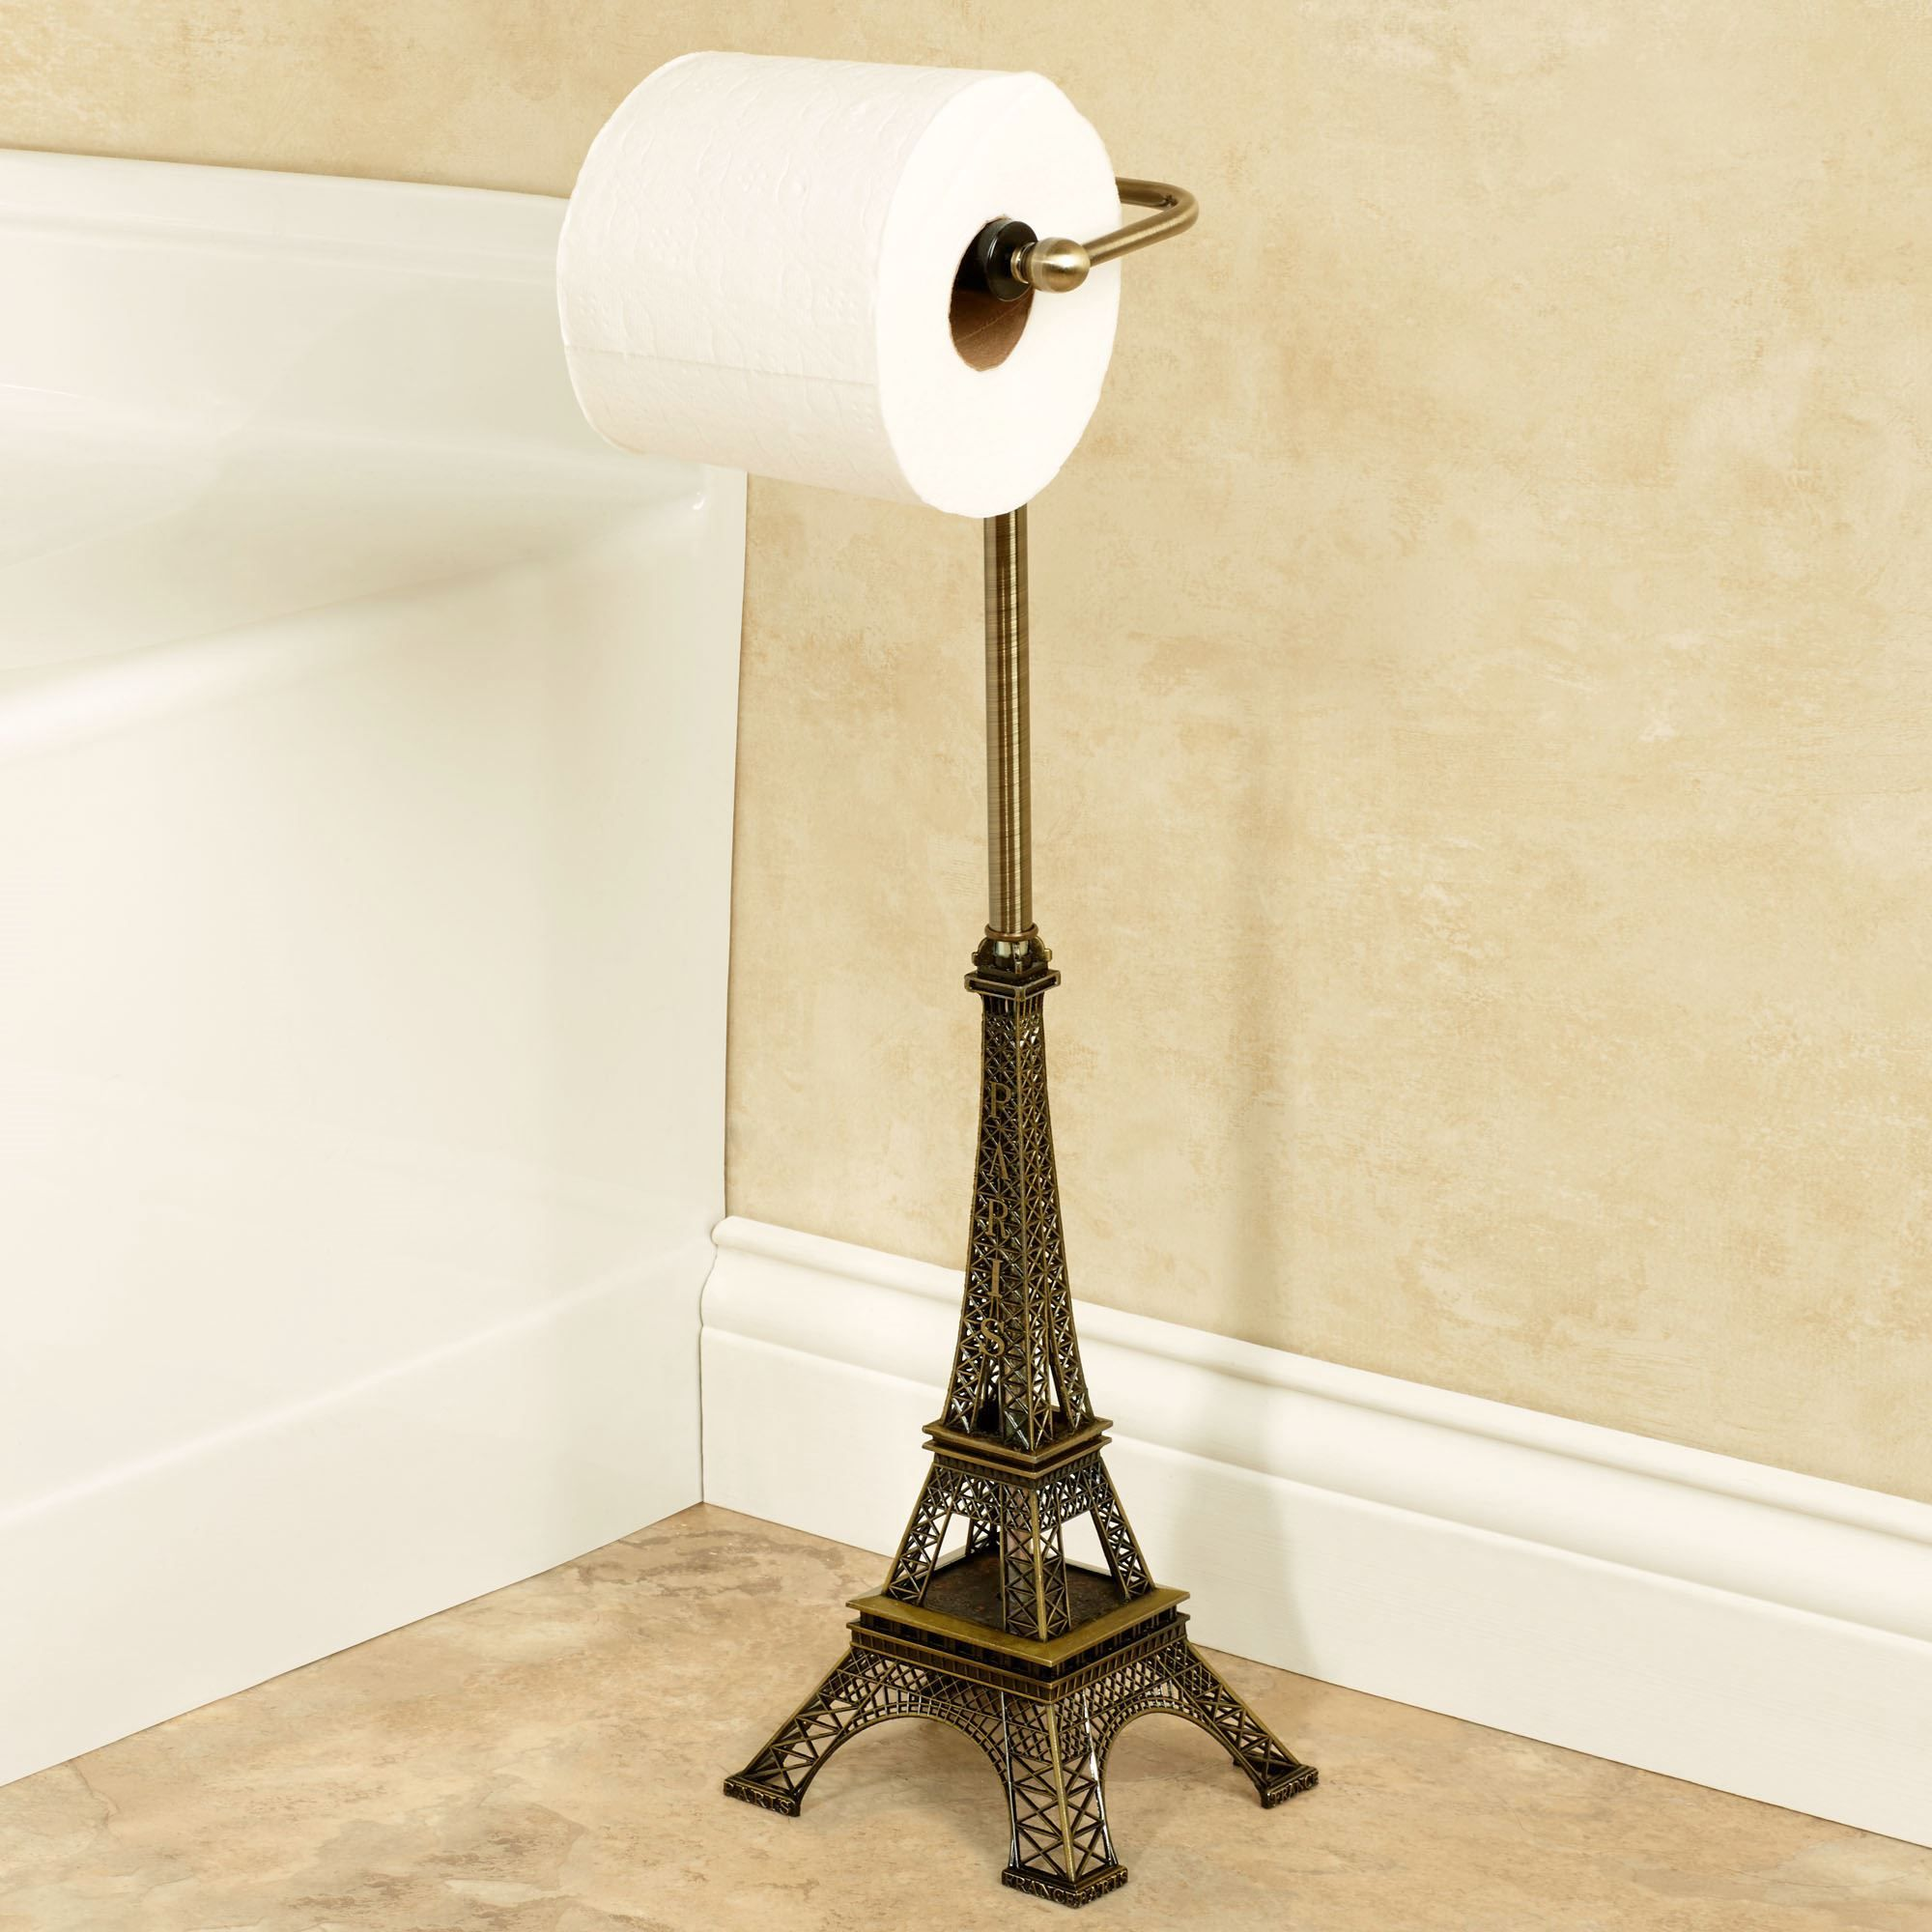 Eiffel tower bathroom decor - Room